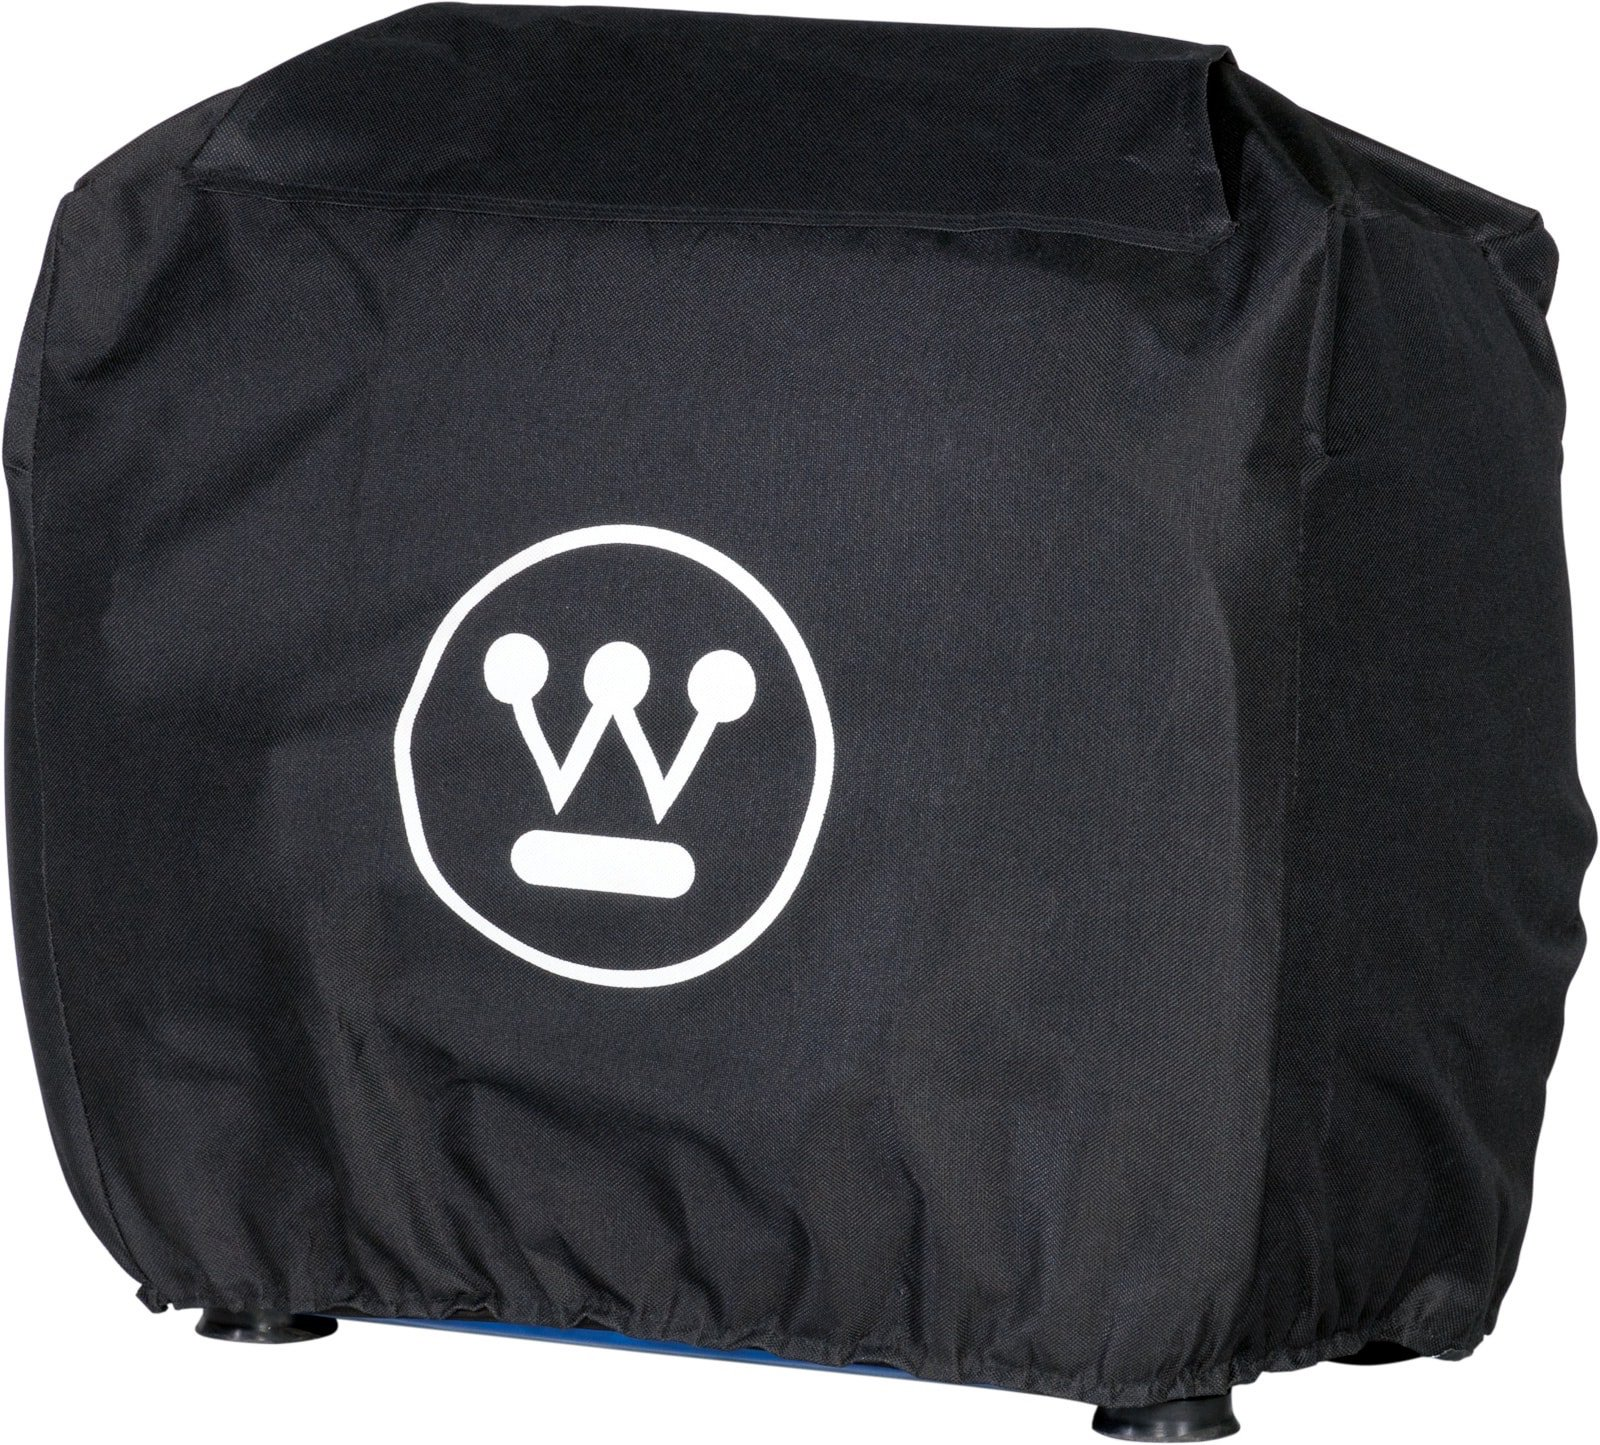 Westinghouse Inverter Generator Cover - Weather Resistant - Fits iGen2200, iGen2500, iPro2500, WH2200iXLT, WH2400i by Westinghouse